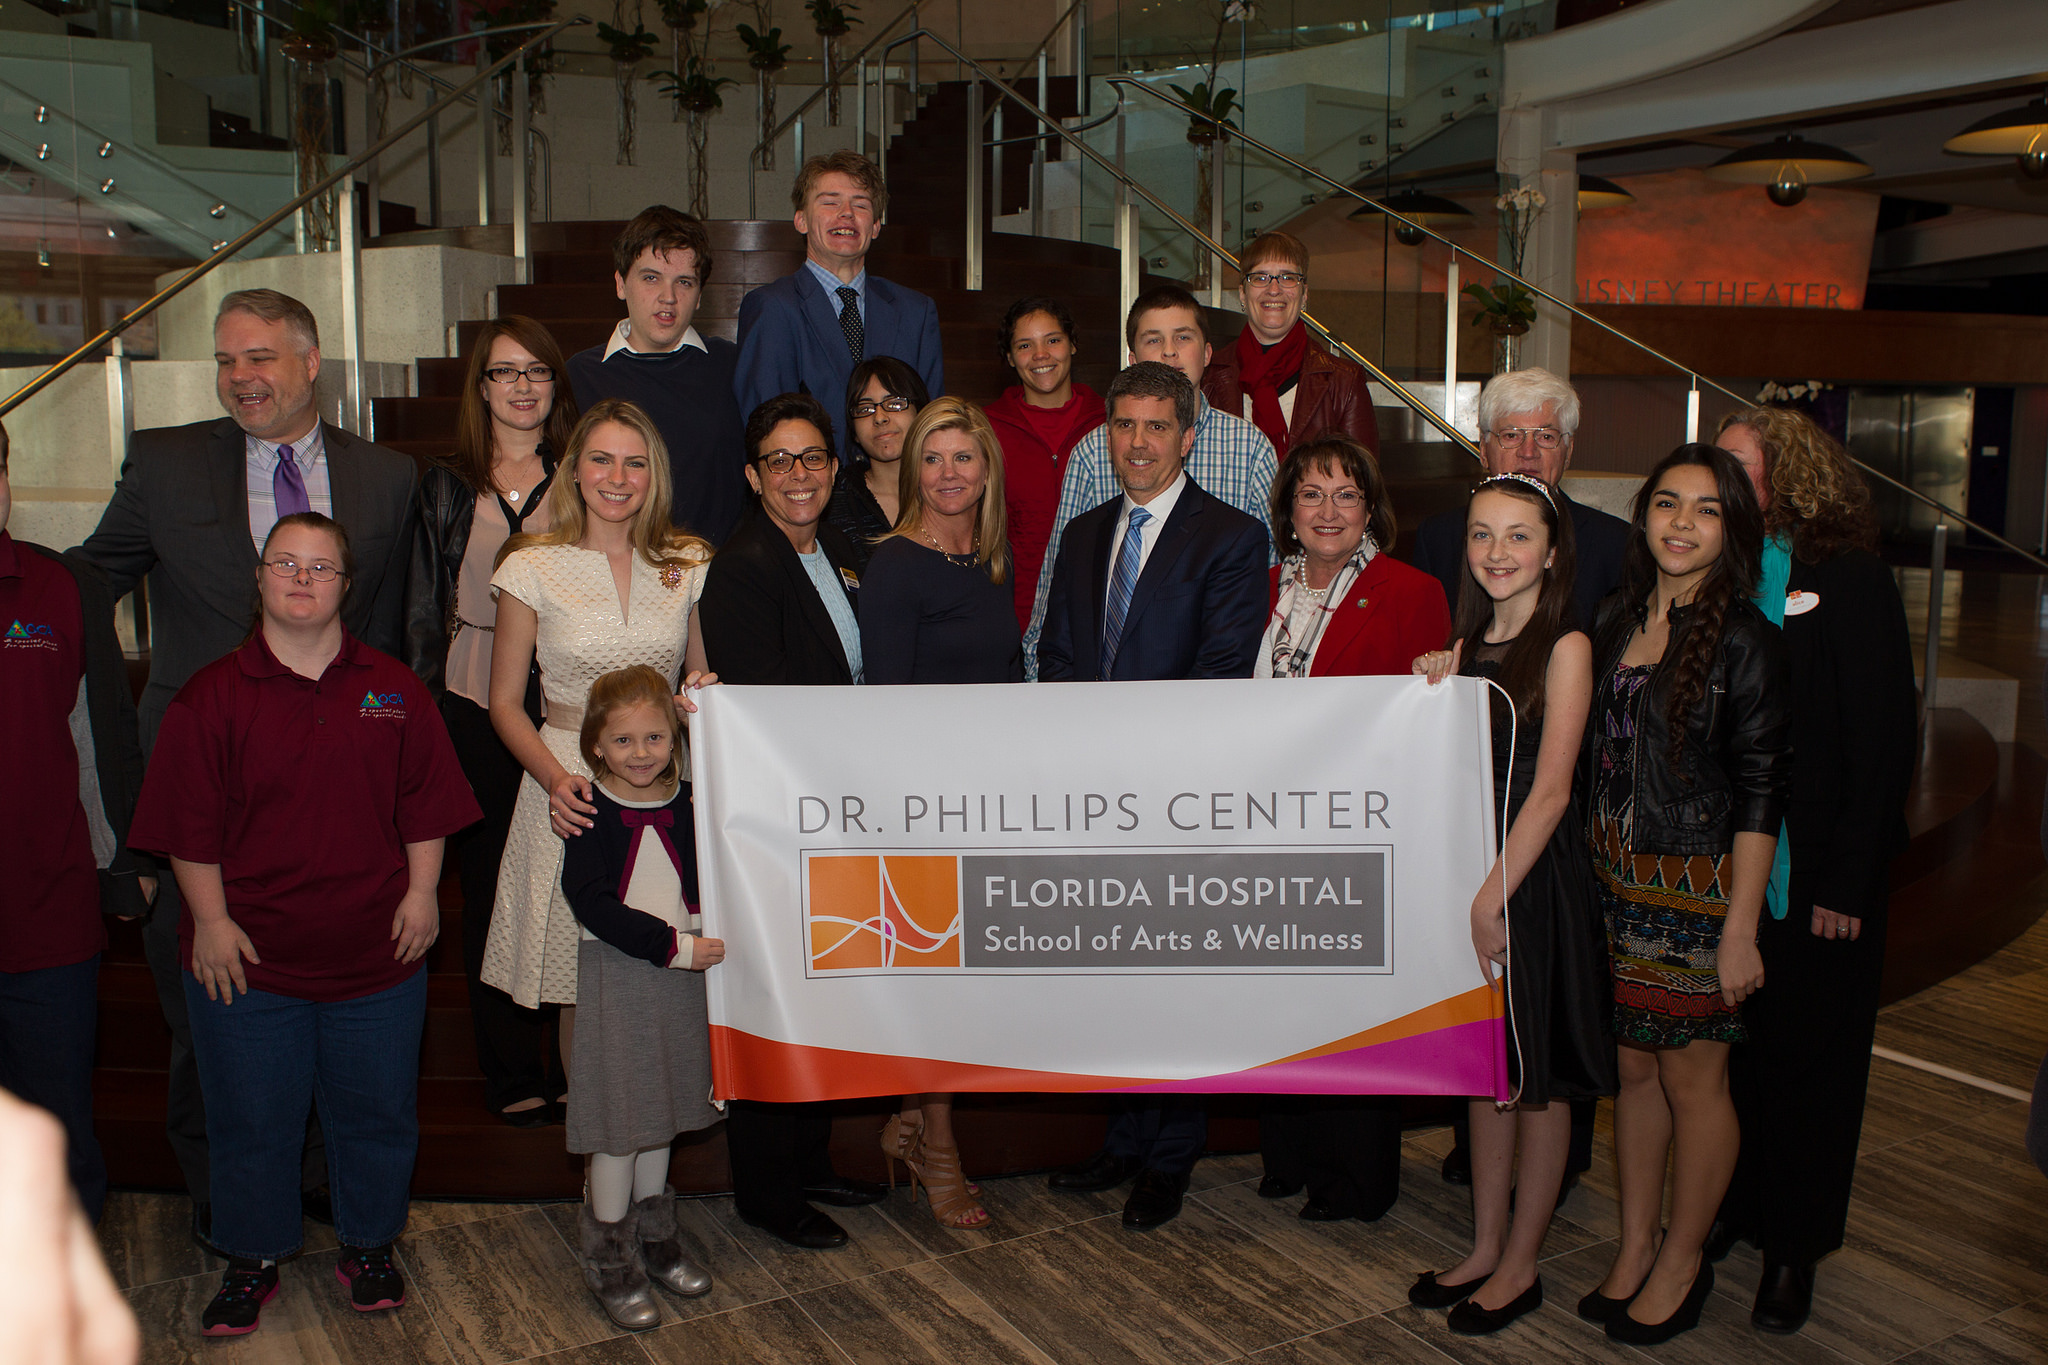 Dr. Phillips Center and Florida Hospital representatives for partnership